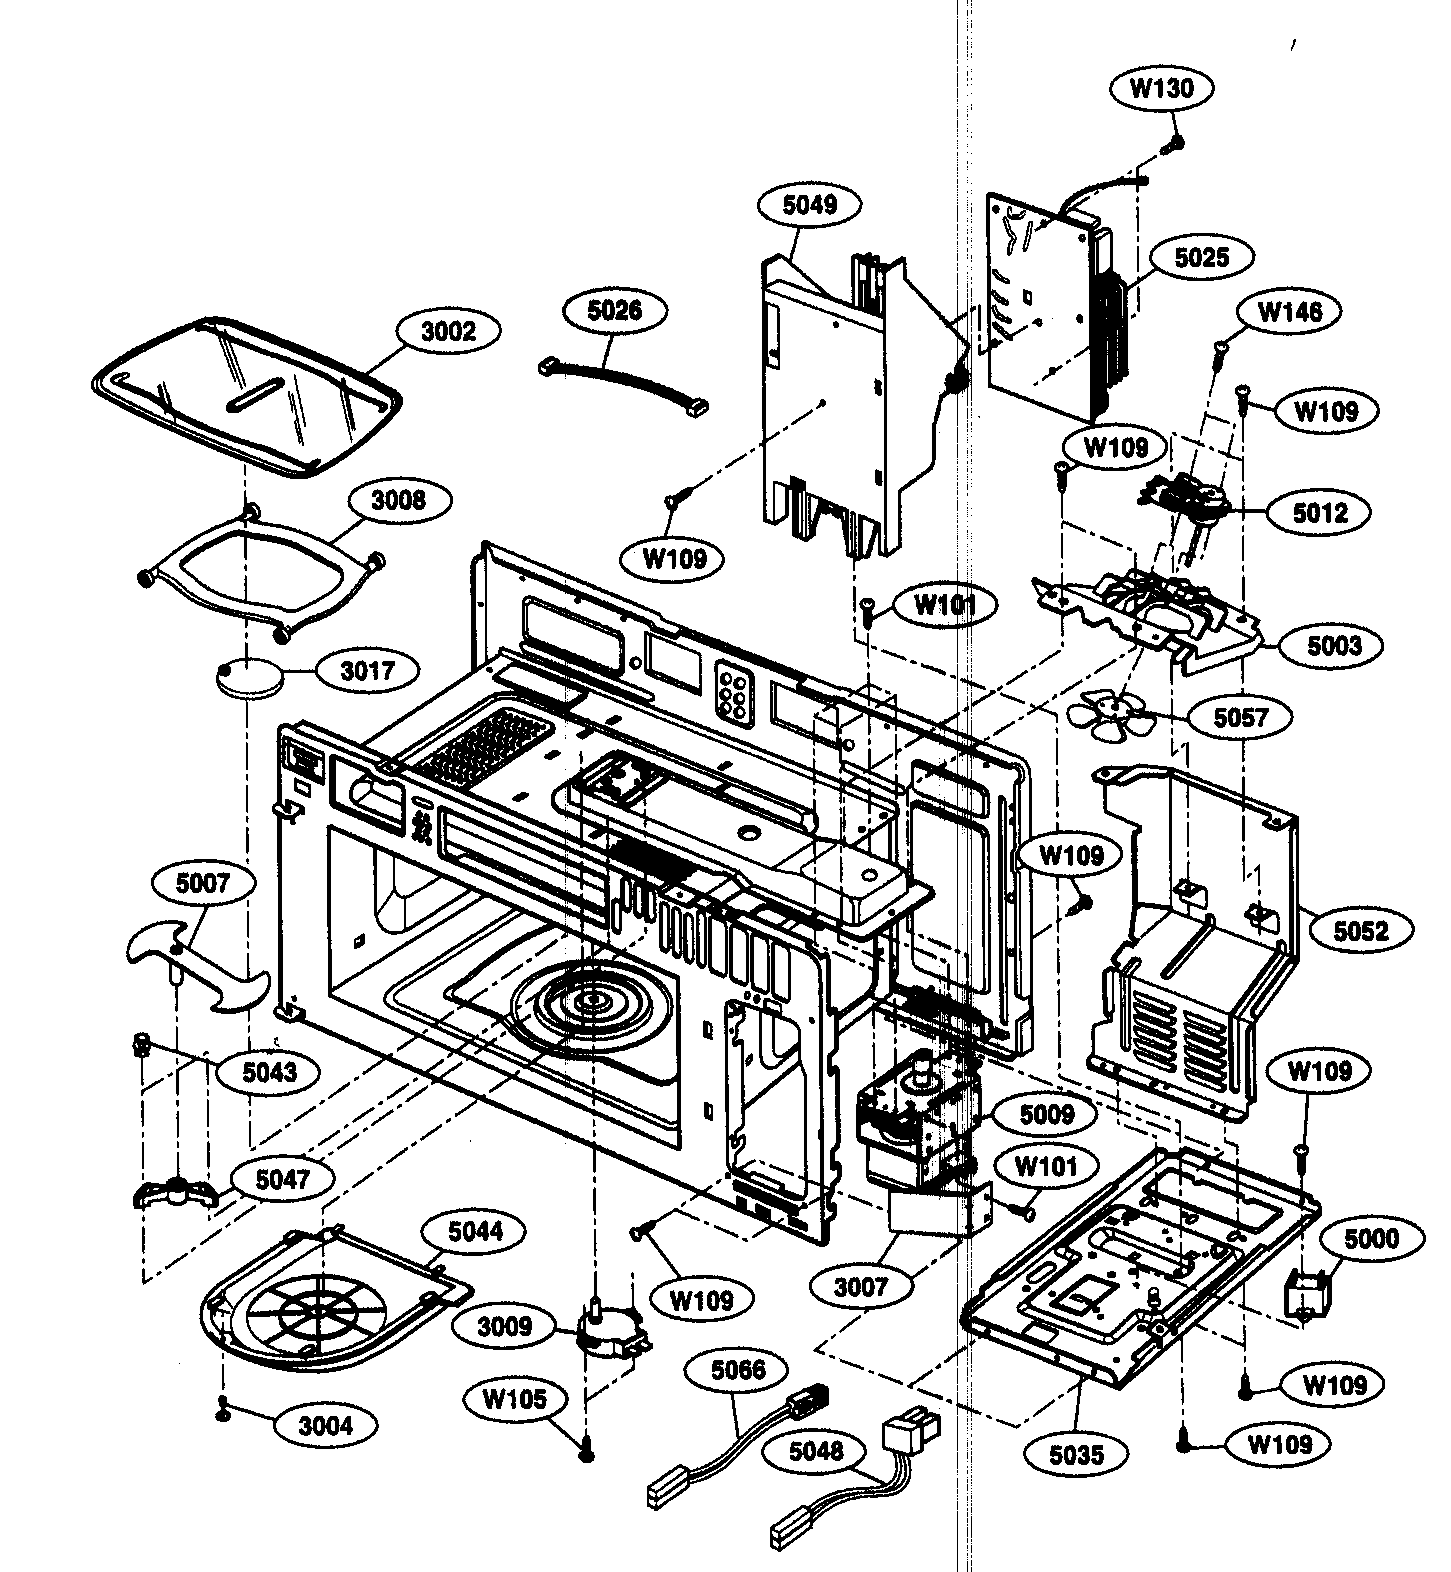 INTERIOR I Diagram & Parts List for Model 72180863400